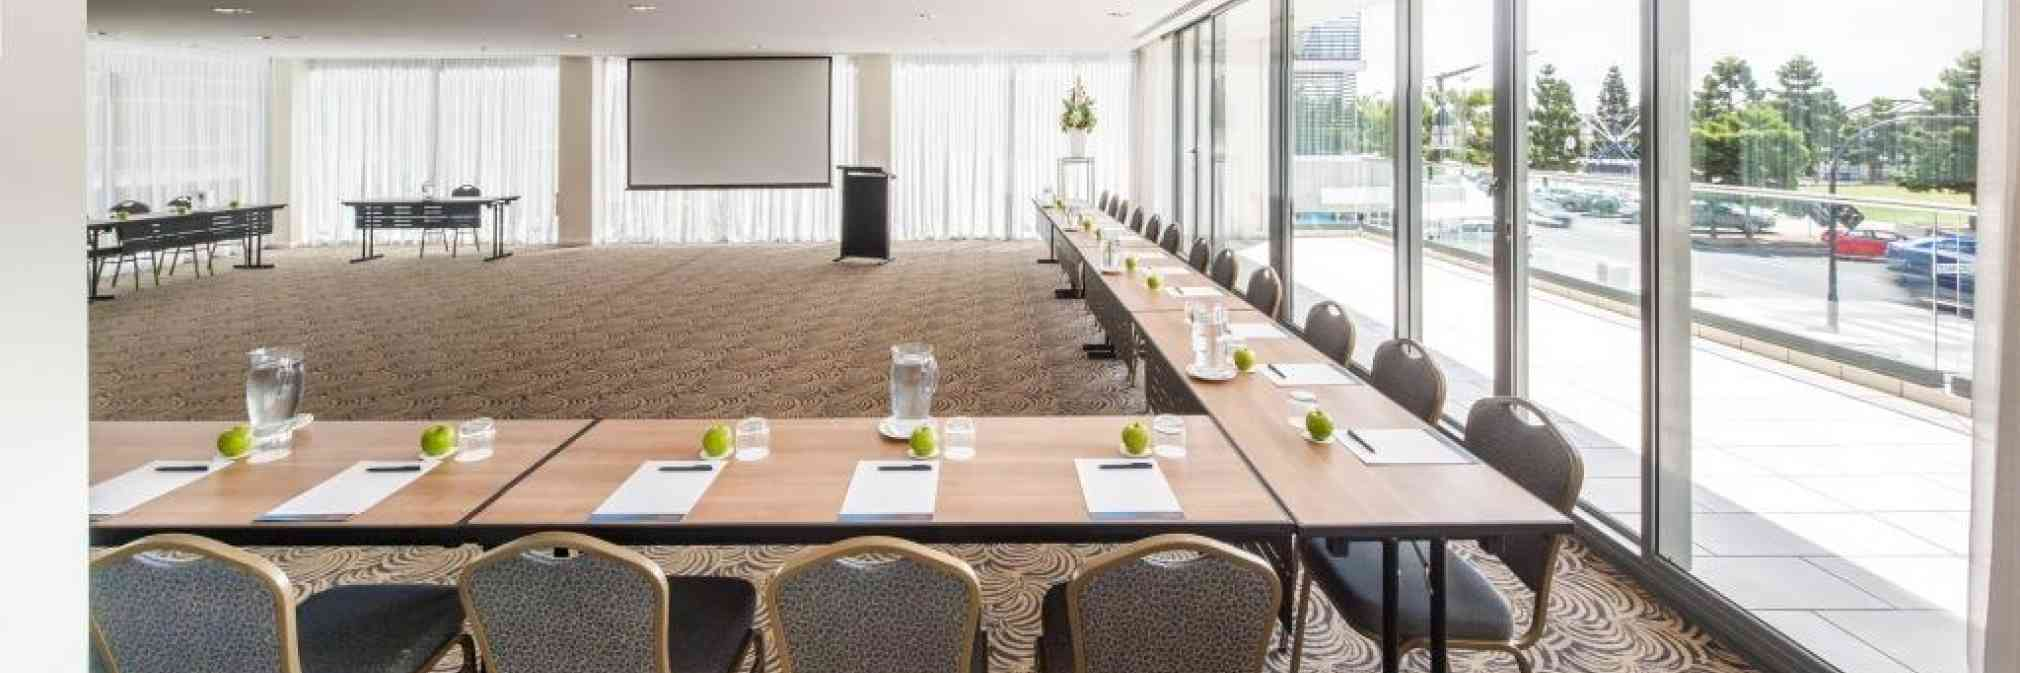 Mercure Hotel Geelong meeting rooms